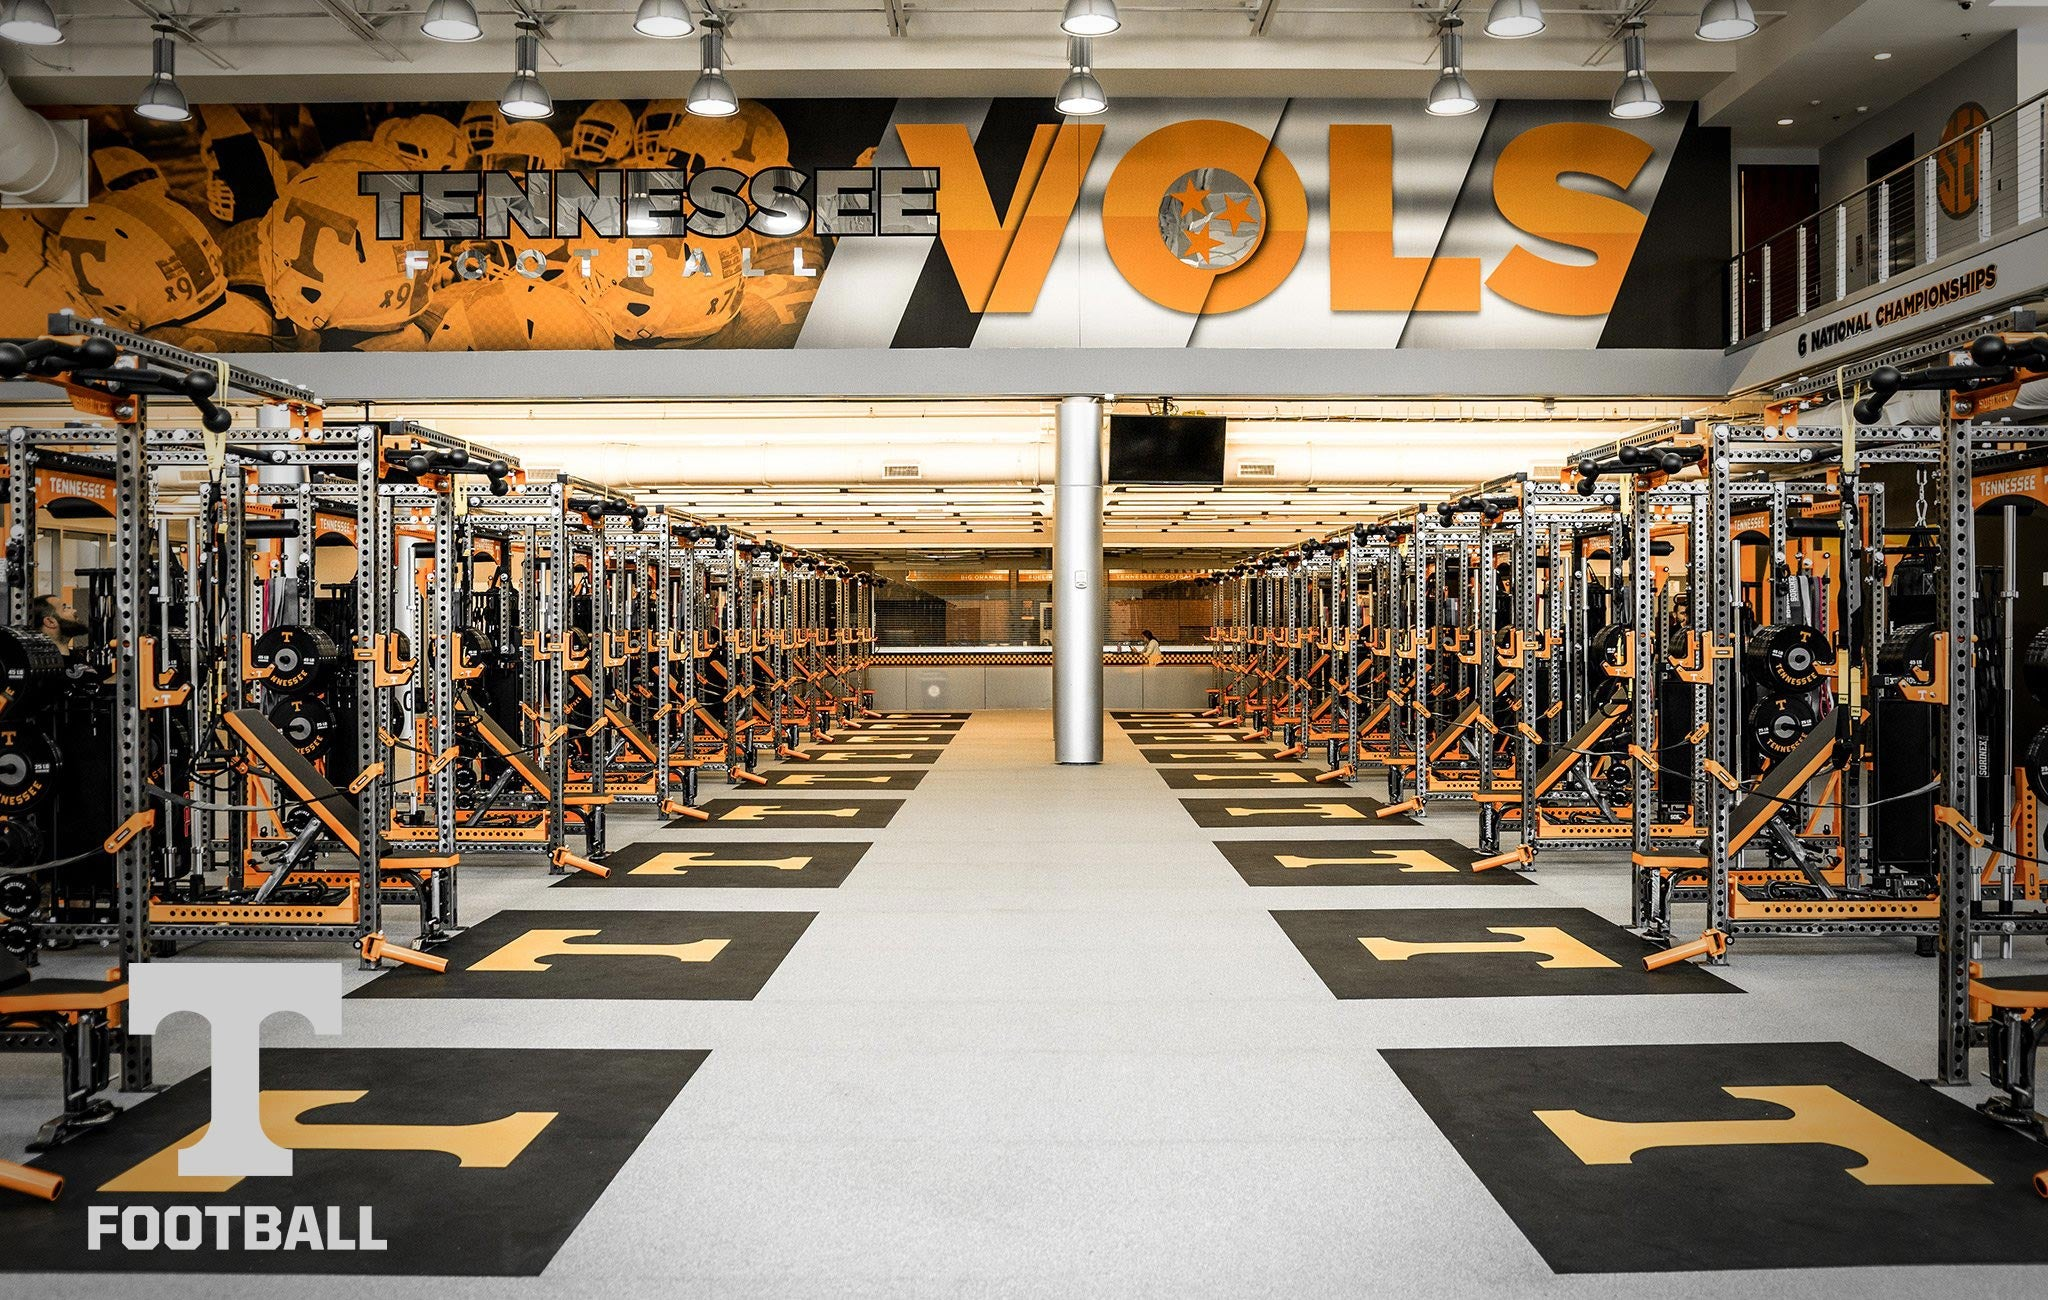 University of Tennessee Football Sorinex strength and conditioning facility